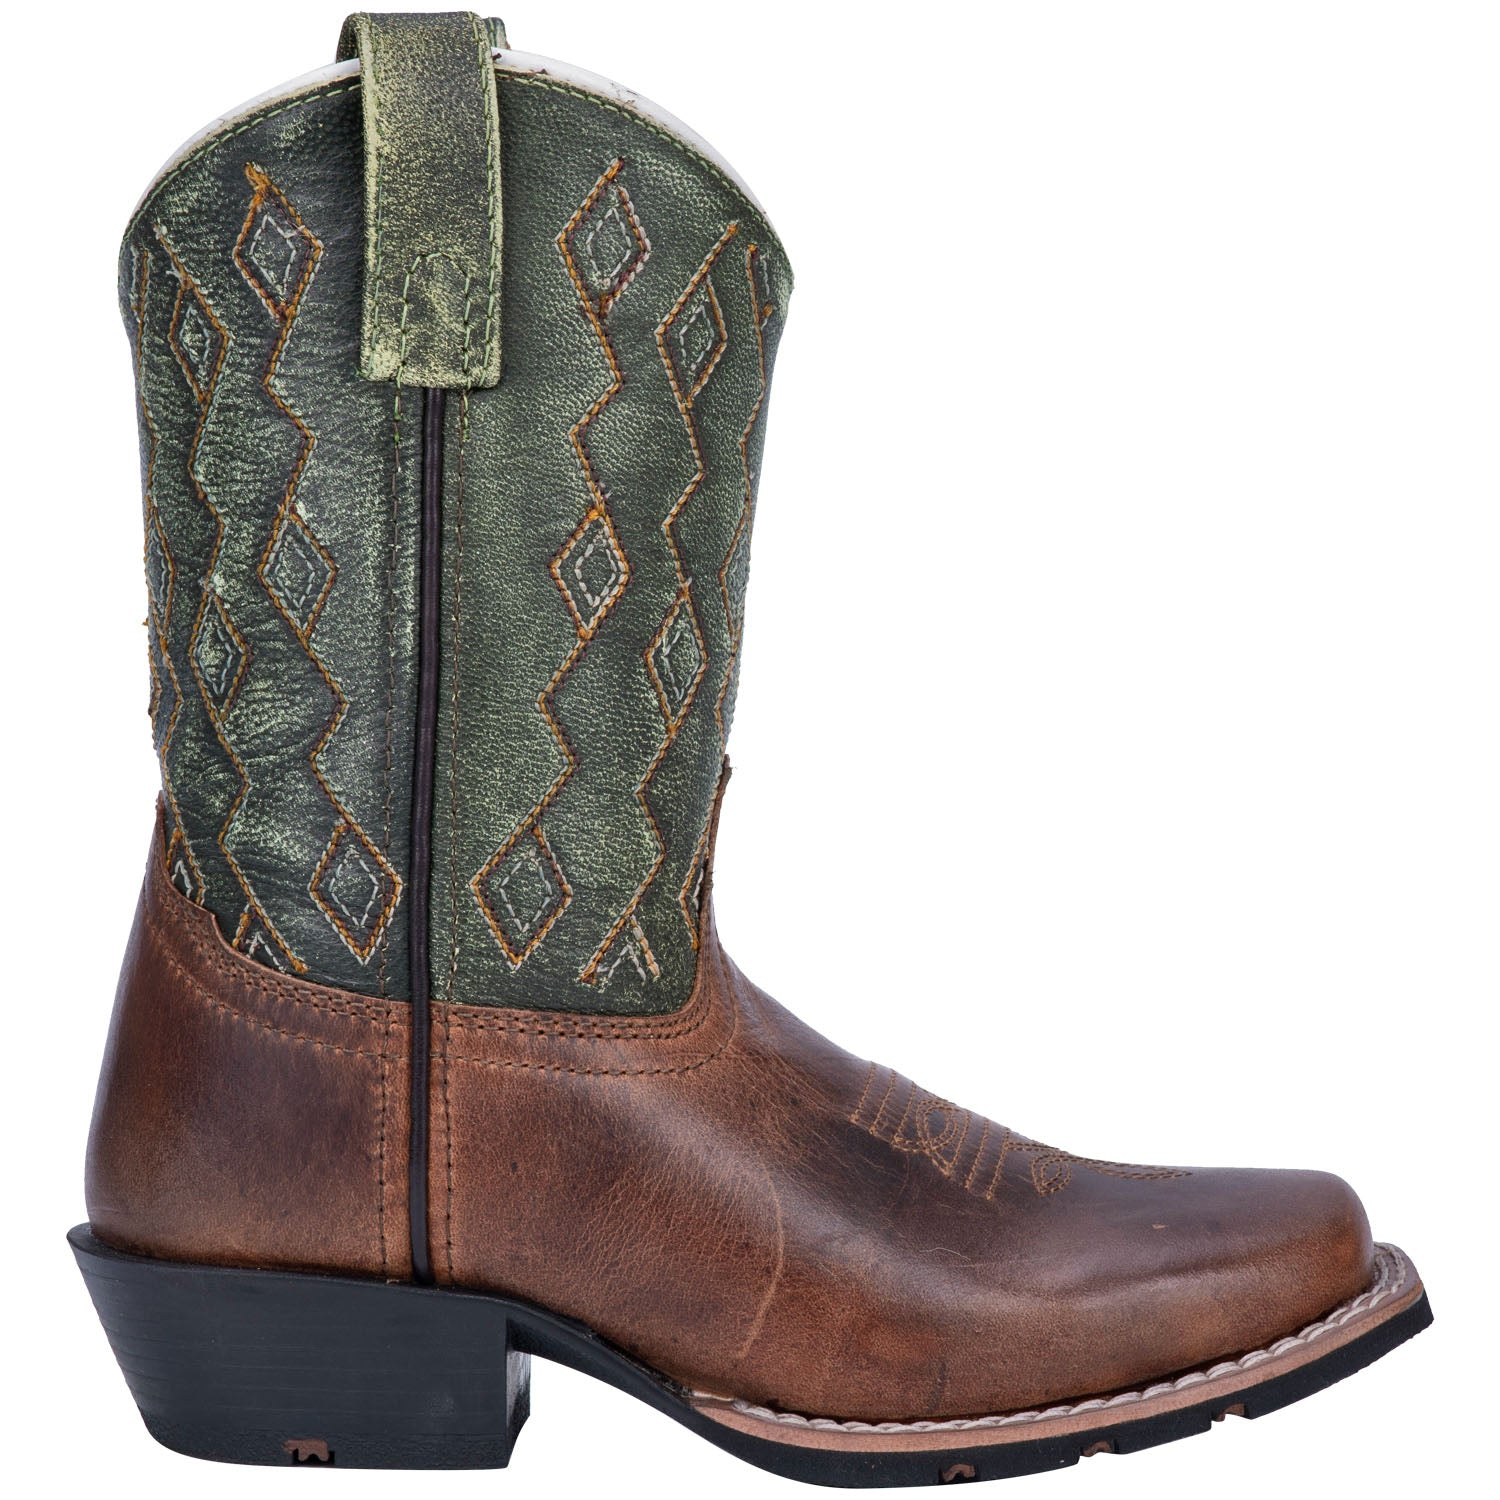 TEDDY LEATHER YOUTH BOOT 15521814544426